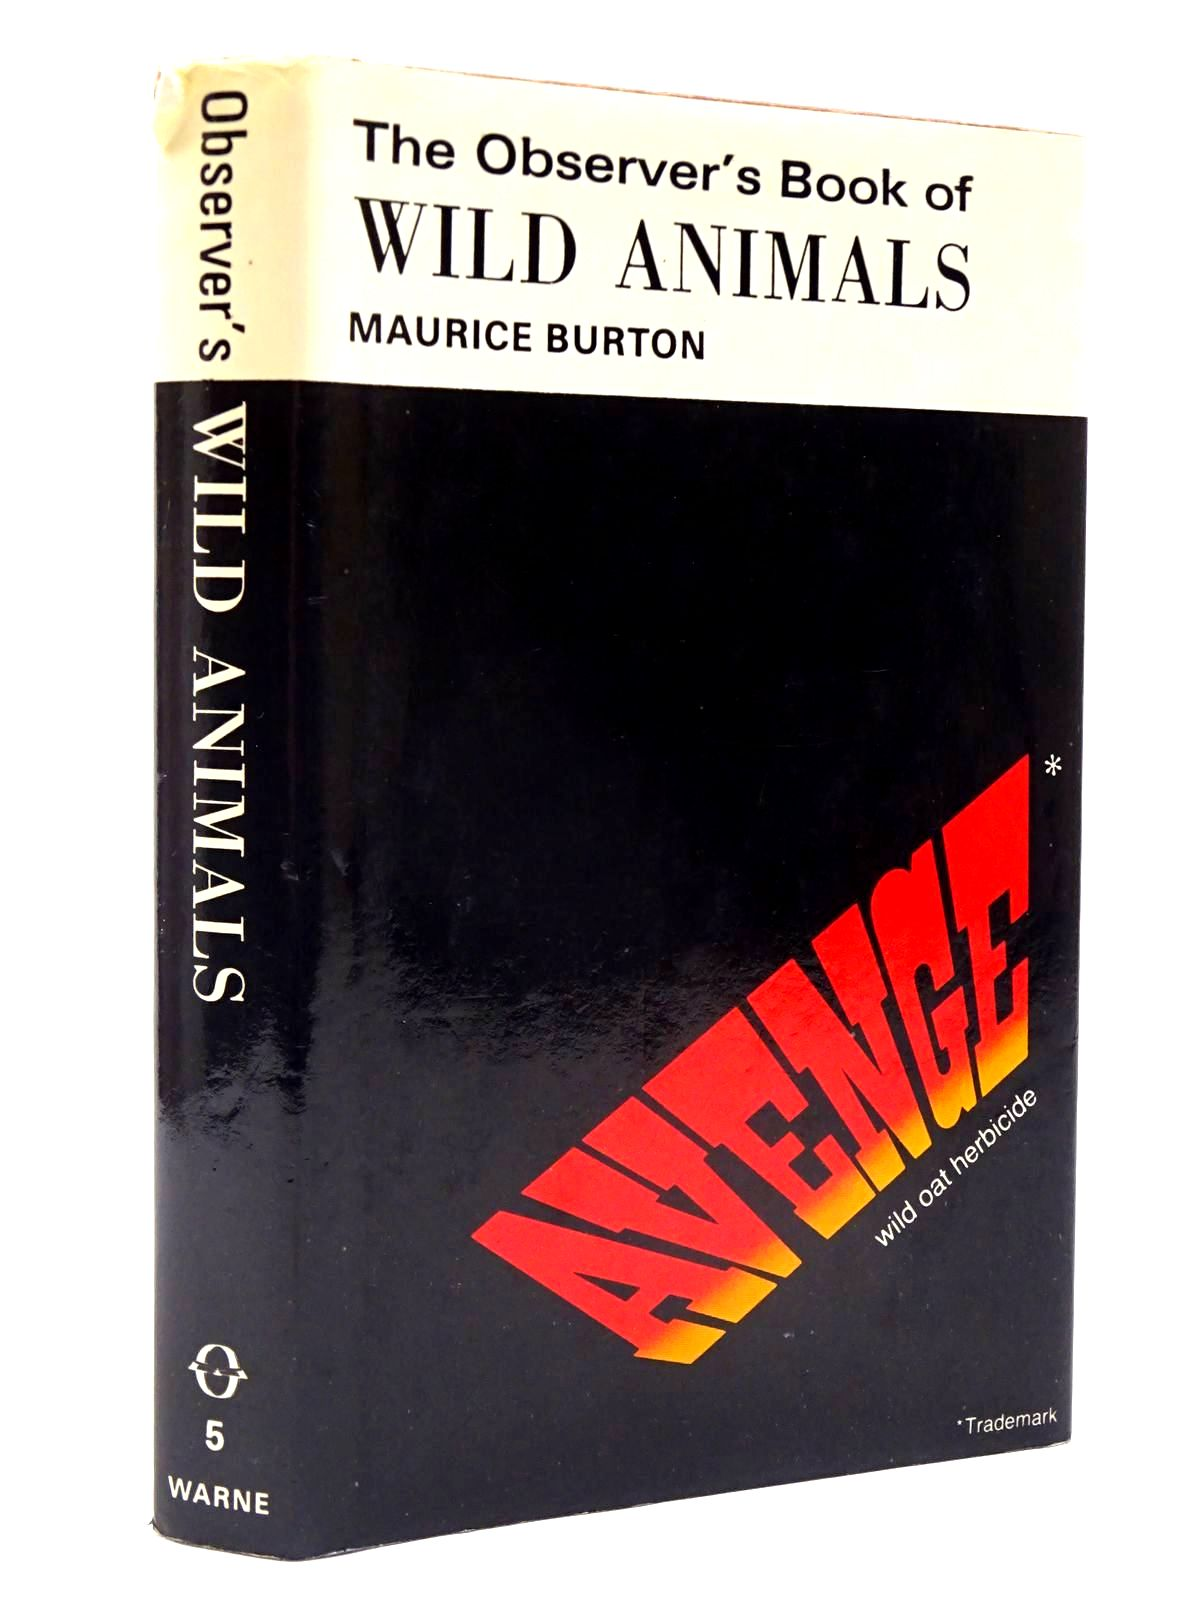 Photo of THE OBSERVER'S BOOK OF WILD ANIMALS (CYANAMID WRAPPER) written by Burton, Maurice published by Frederick Warne & Co Ltd. (STOCK CODE: 2130414)  for sale by Stella & Rose's Books